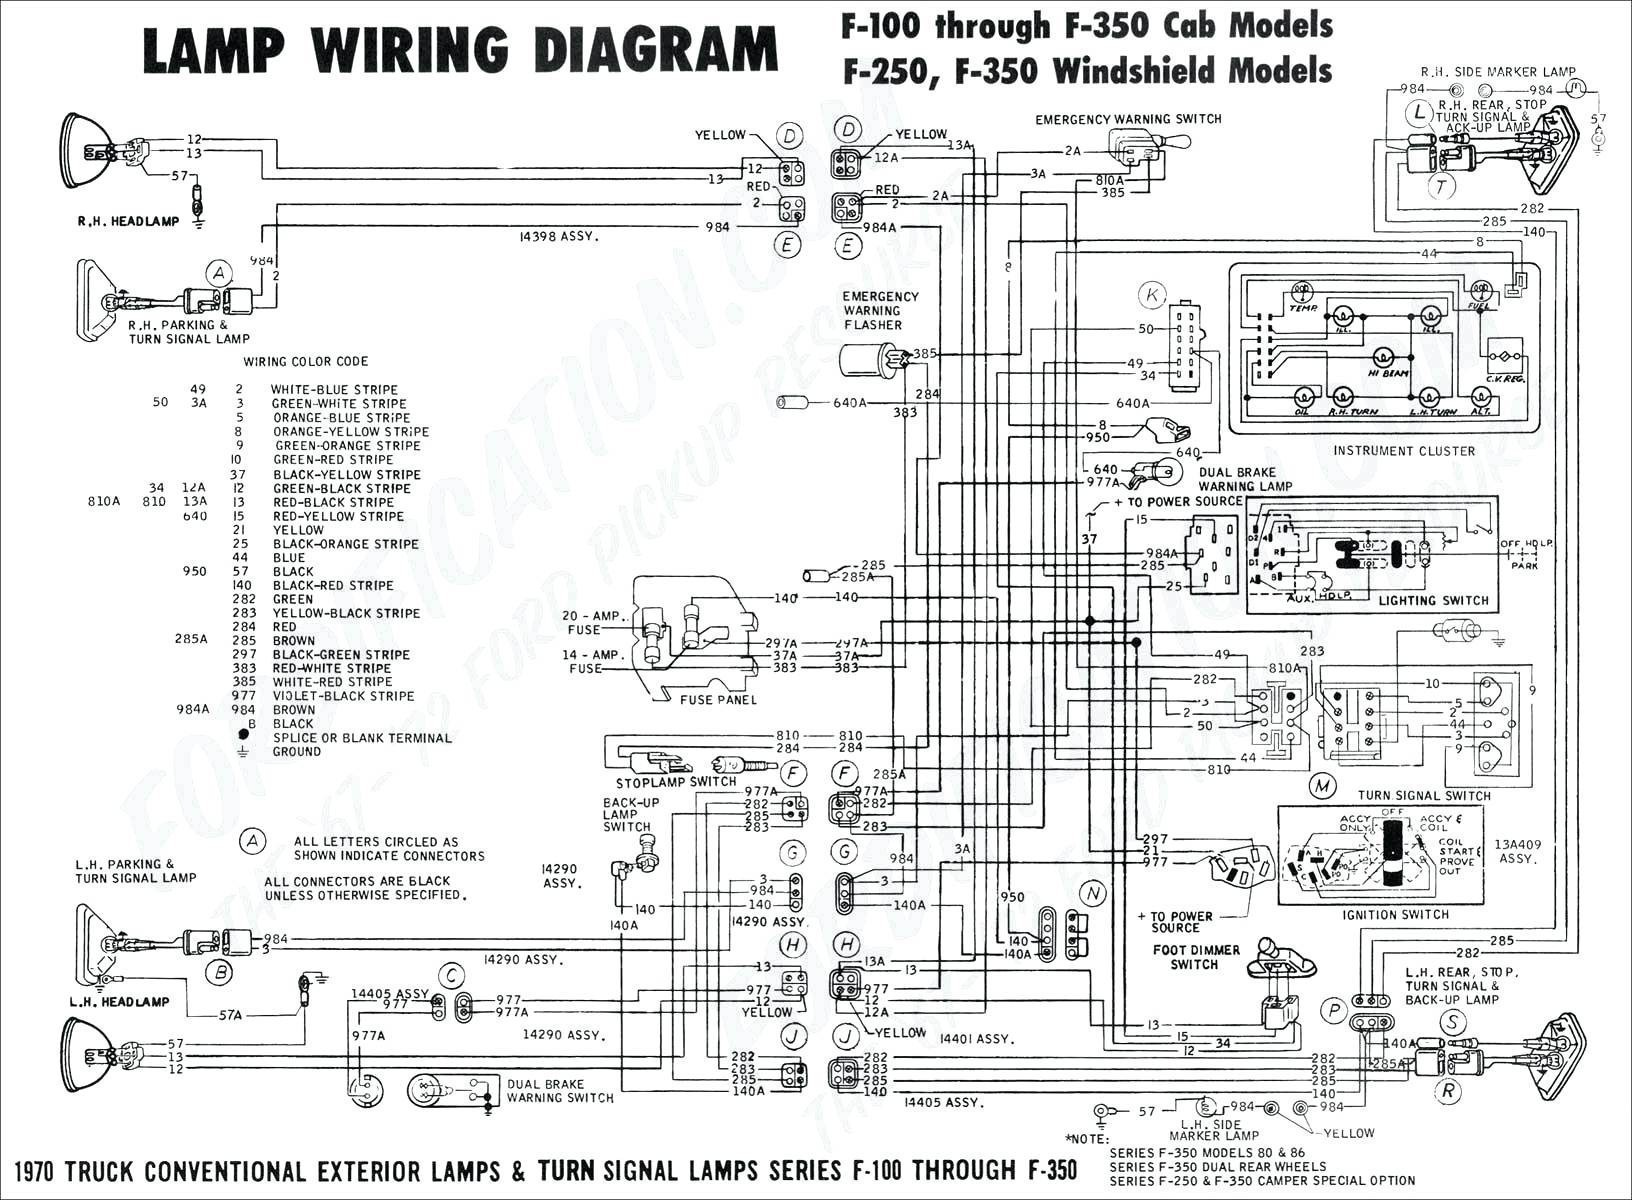 hight resolution of 1976 351 pcm wire diagram wiring diagrams recent 351 pcm wiring diagram wiring diagram 1976 351